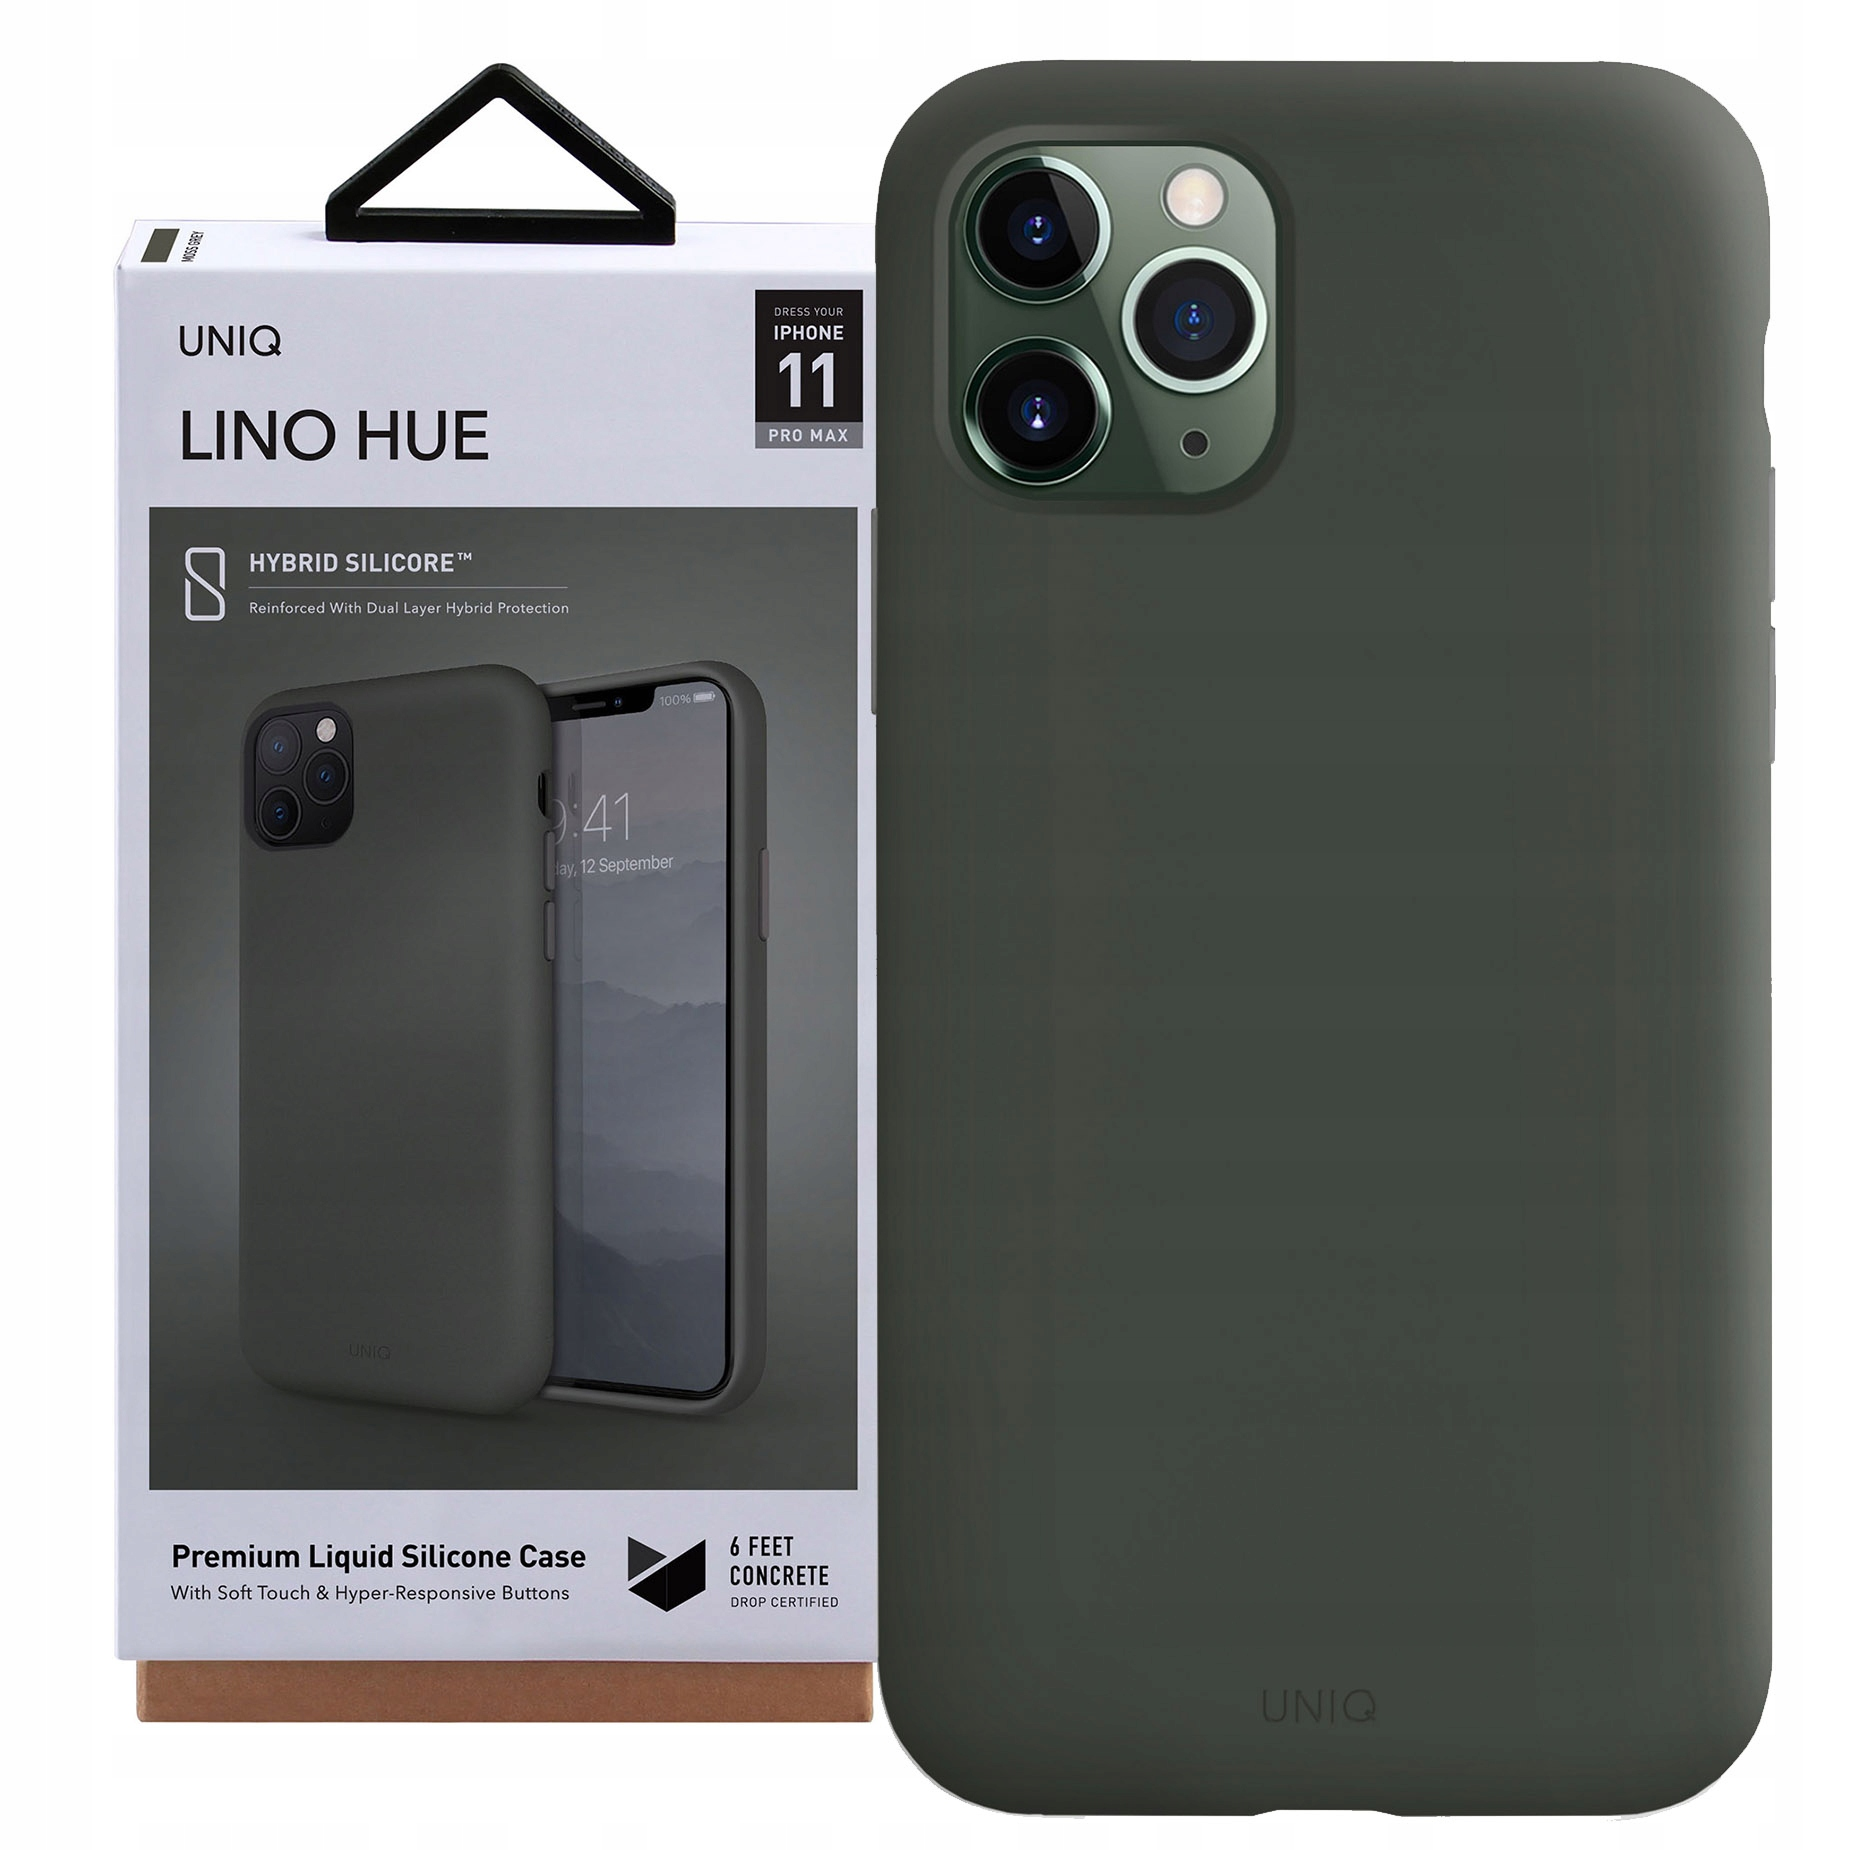 Etui Uniq do iPhone 11 Pro Max, case pokrowiec, Lh